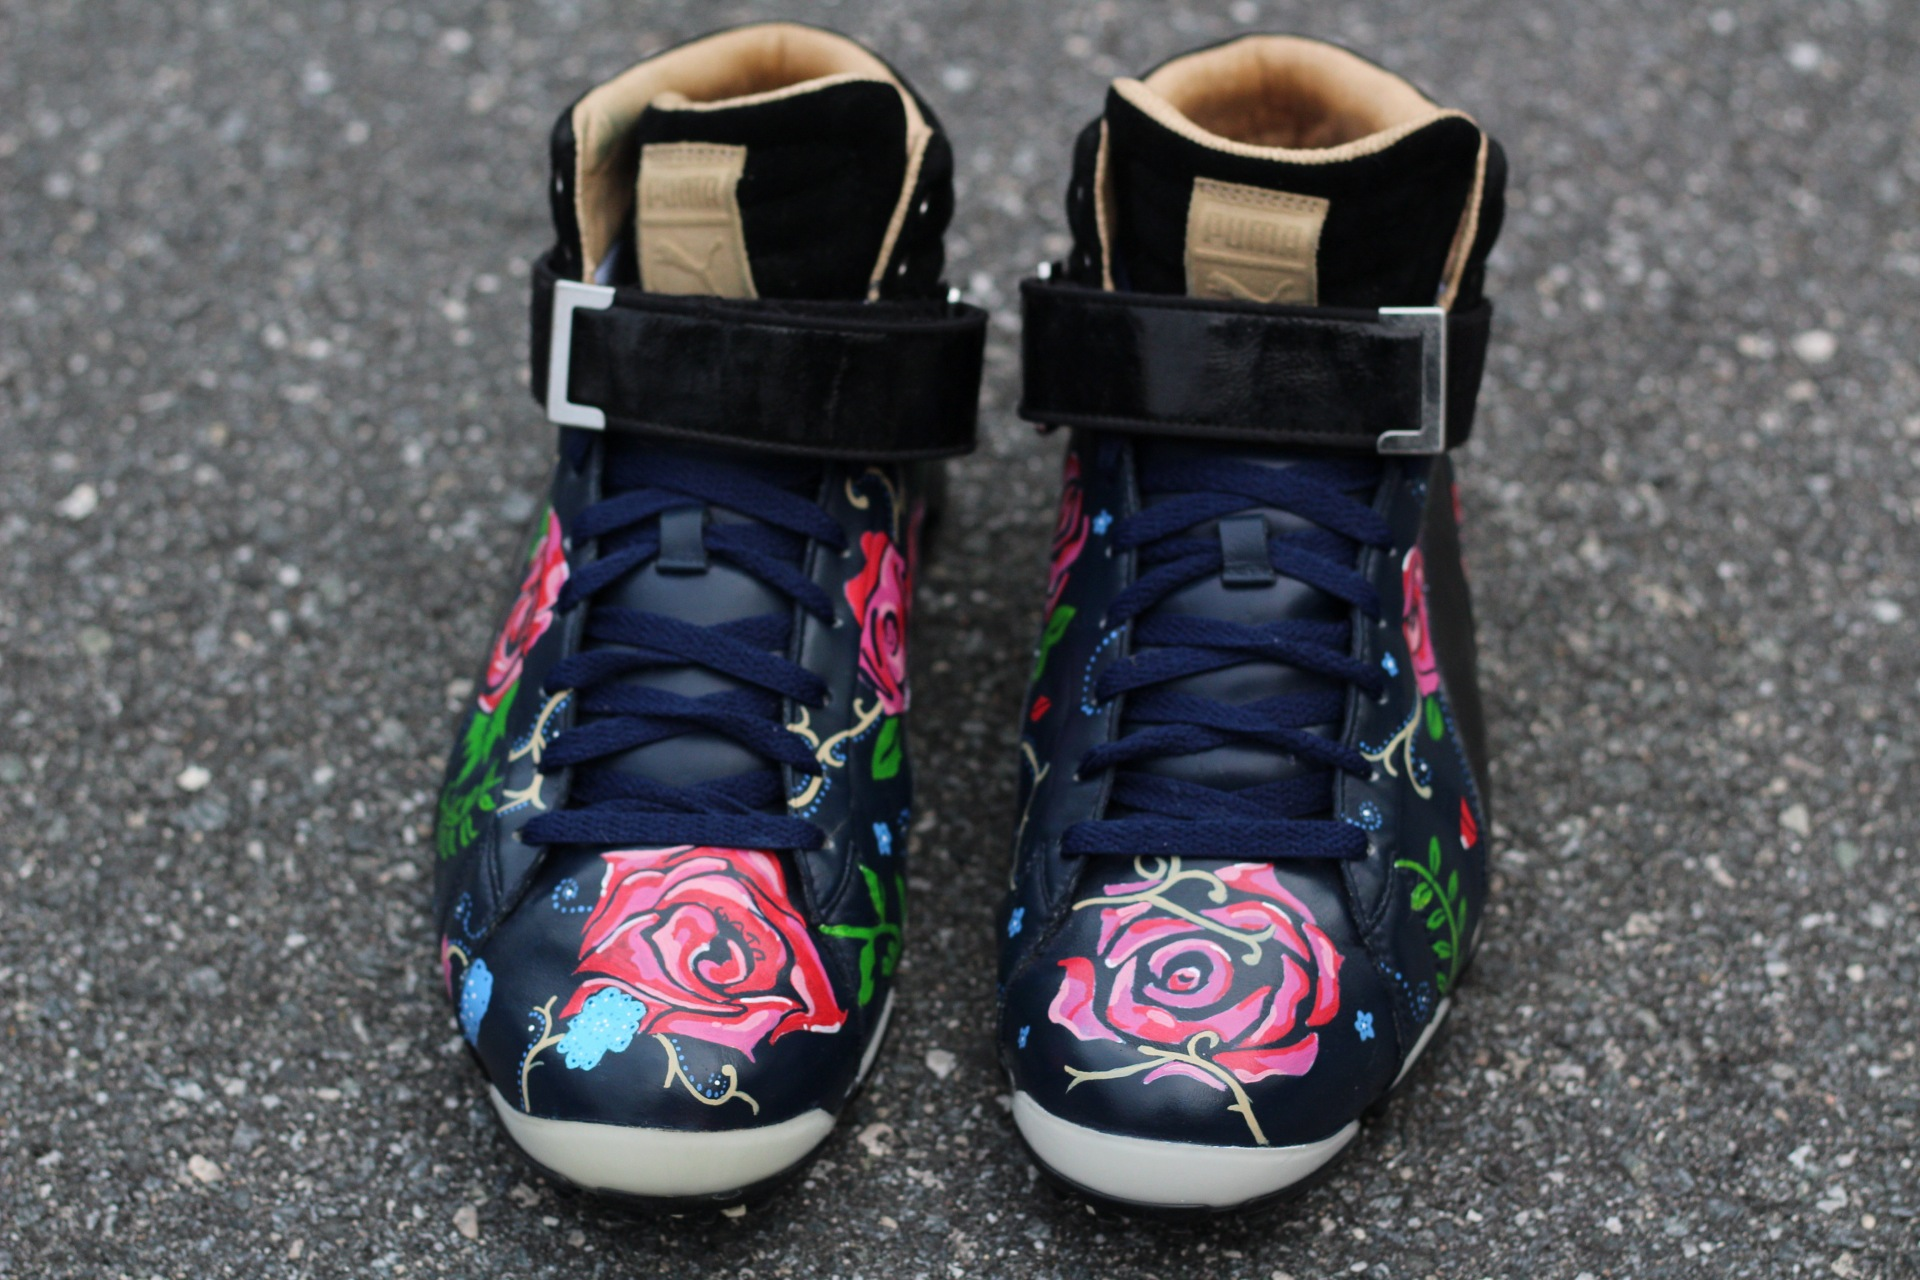 Floral Golf Cleats!